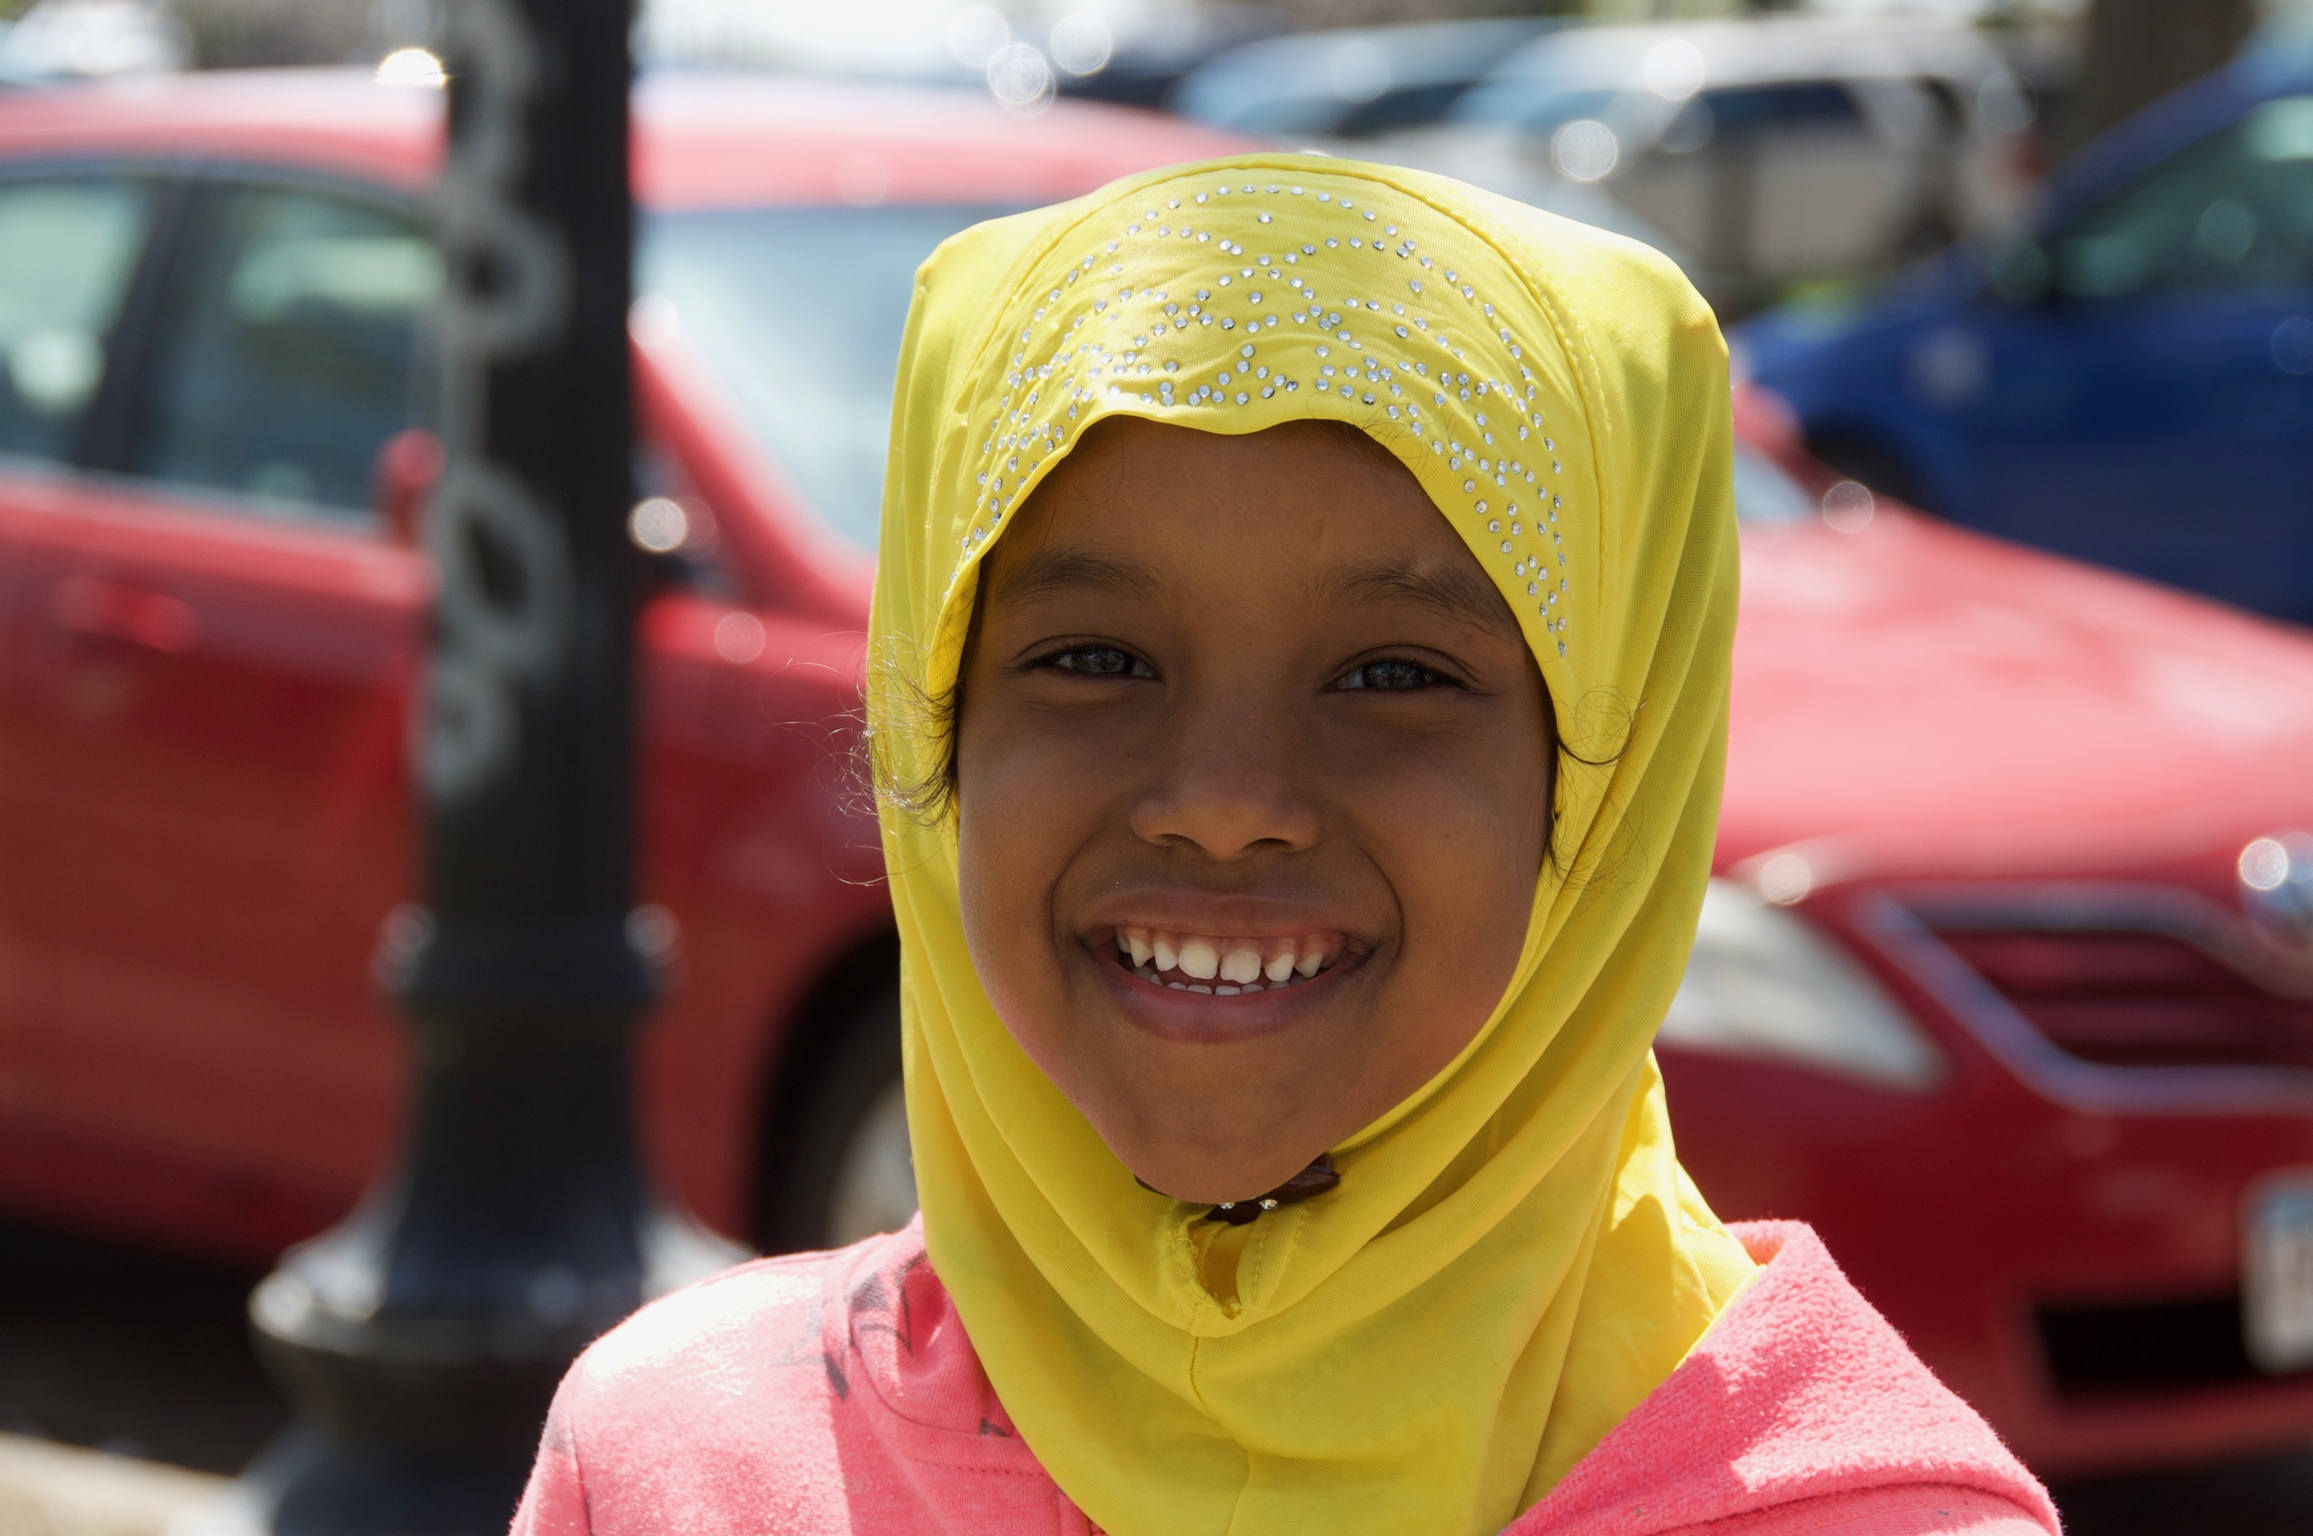 A beautiful young girl in a bright hijab accompanies her mother on errands